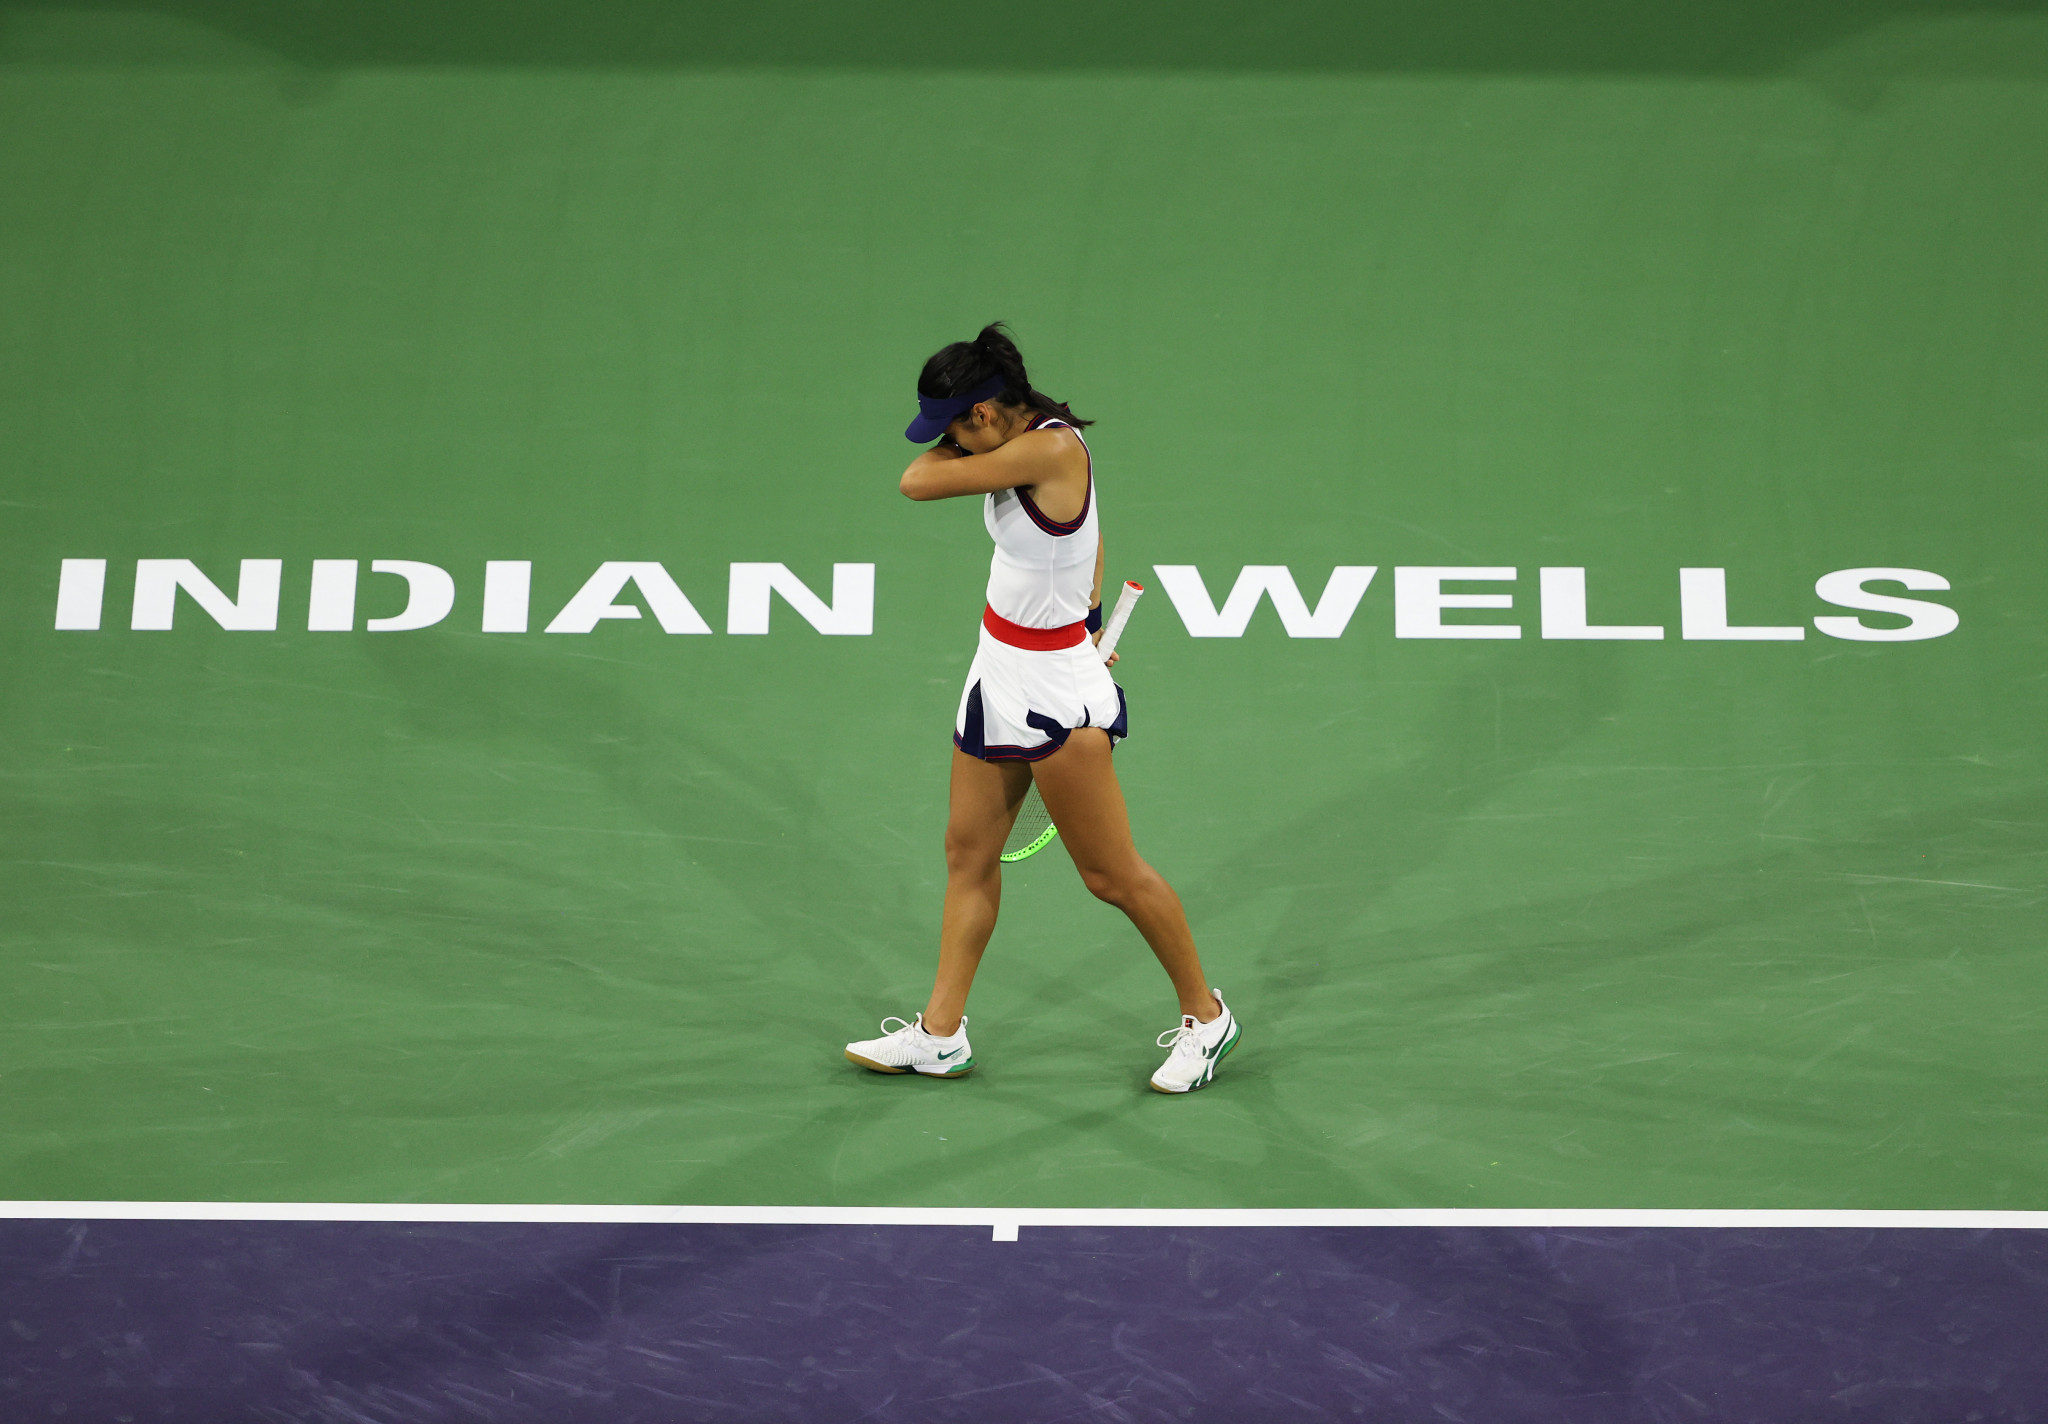 US Open champion Raducanu knocked out of Indian Wells Masters in first match since Grand Slam triumph